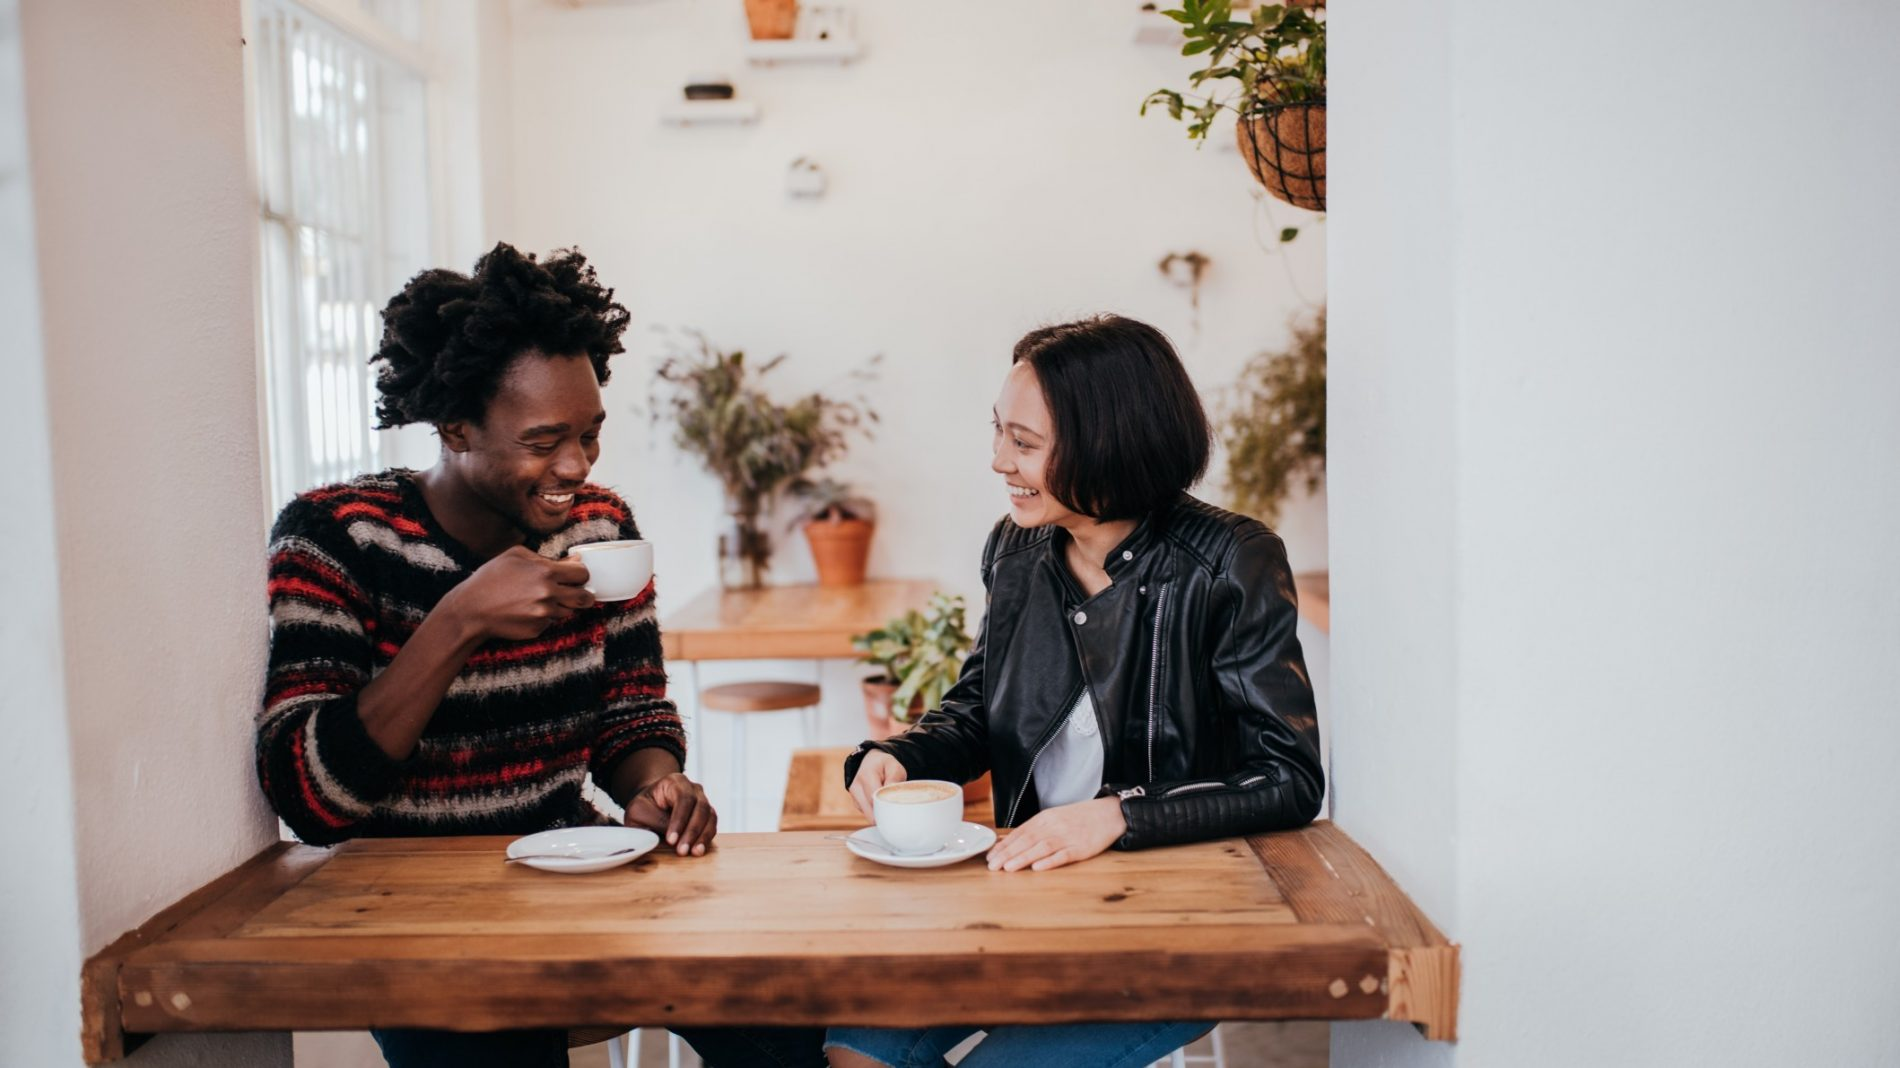 autumn-couple-couple-cafe-coffee-smiling-fall-asian-sweater-happy-date-drinking-afro-coffee-shop_t20_YVAa7x